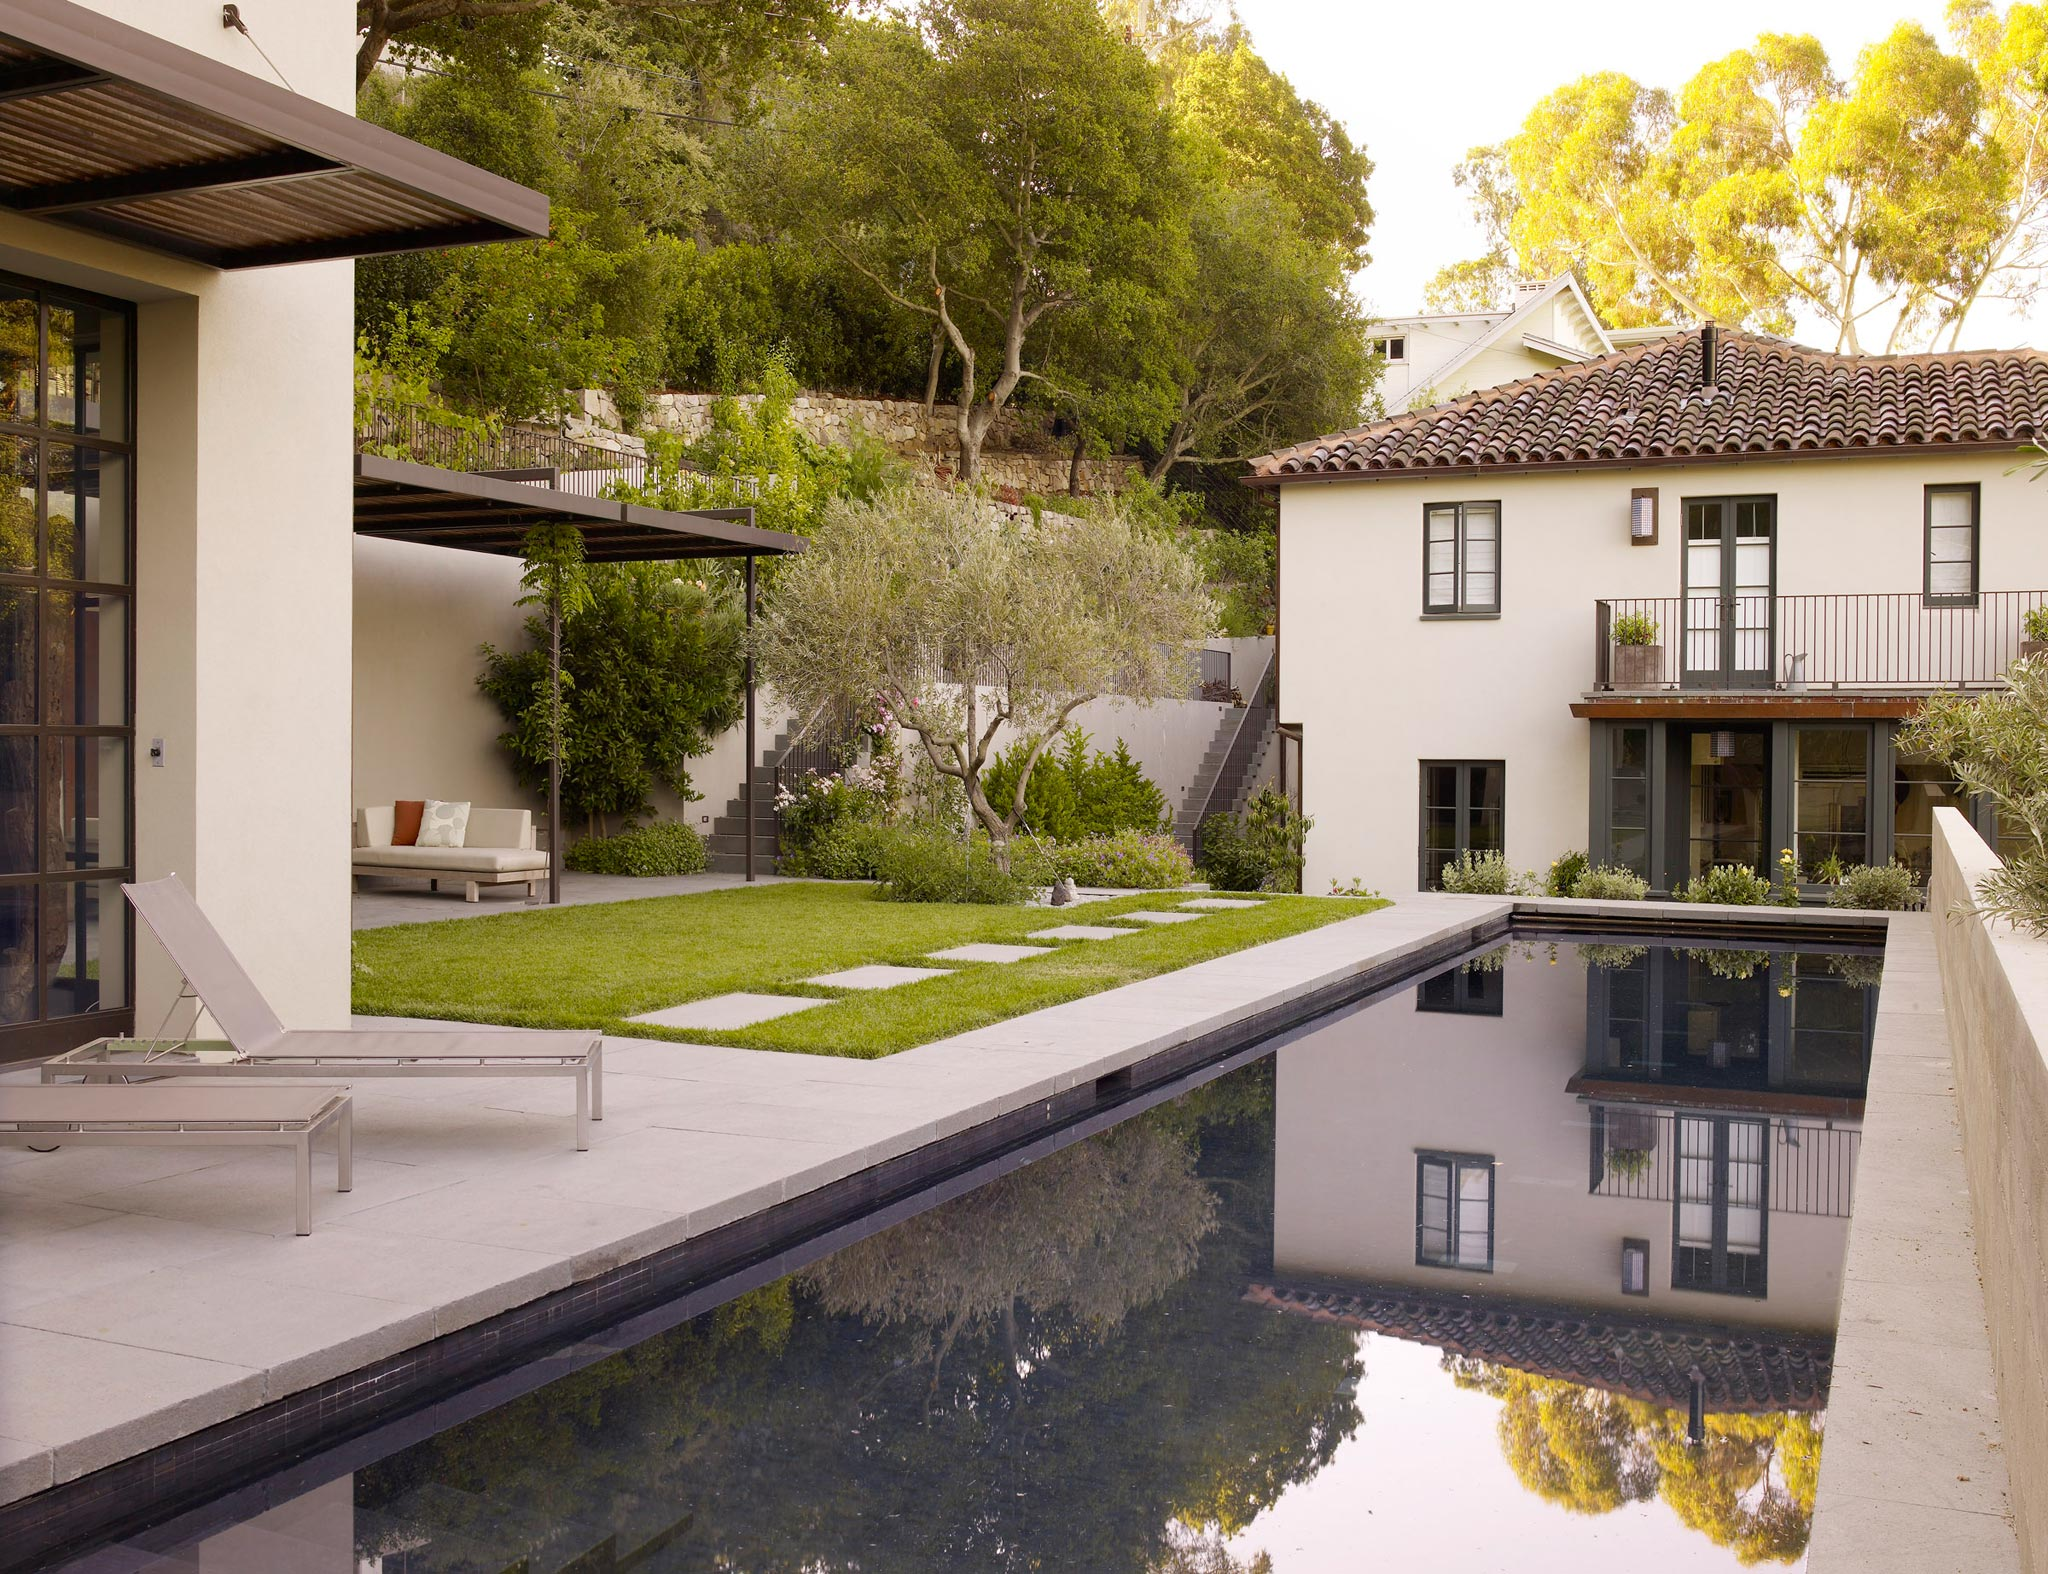 Claremont modern aesthetic pavillon house outside view of swimming pool and garden